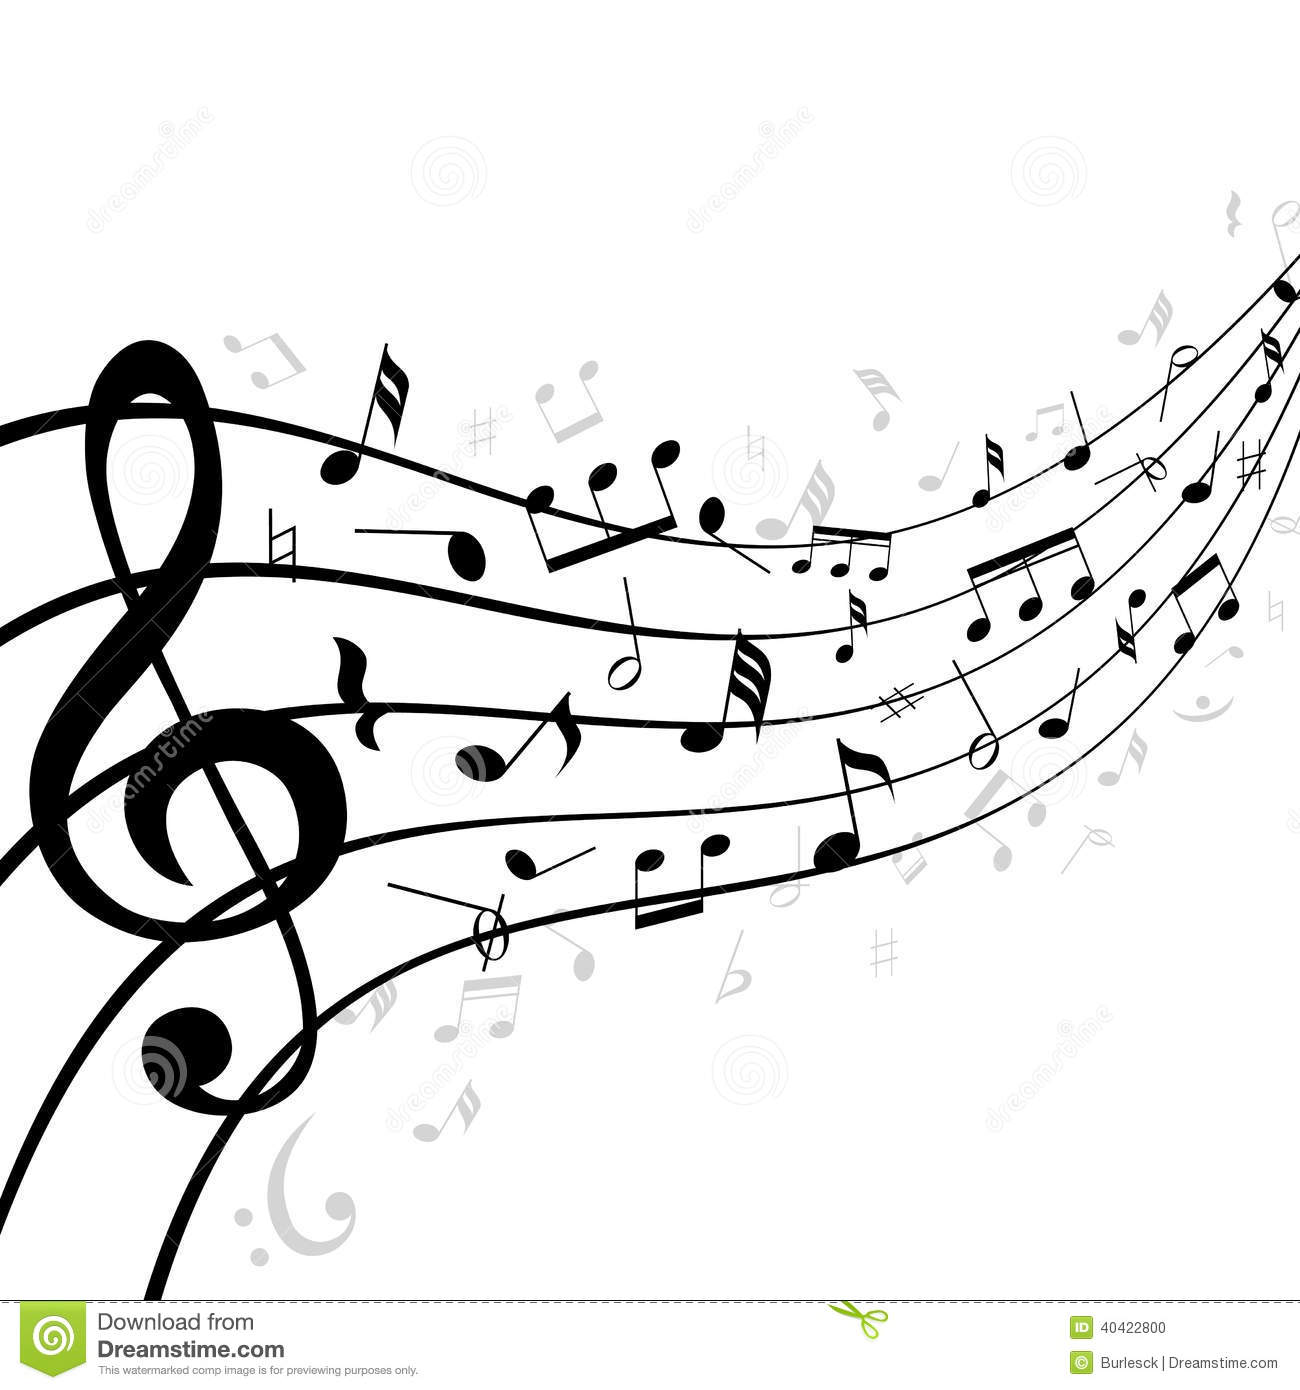 Music Notes On A Stave Or Staff Vector Illustration